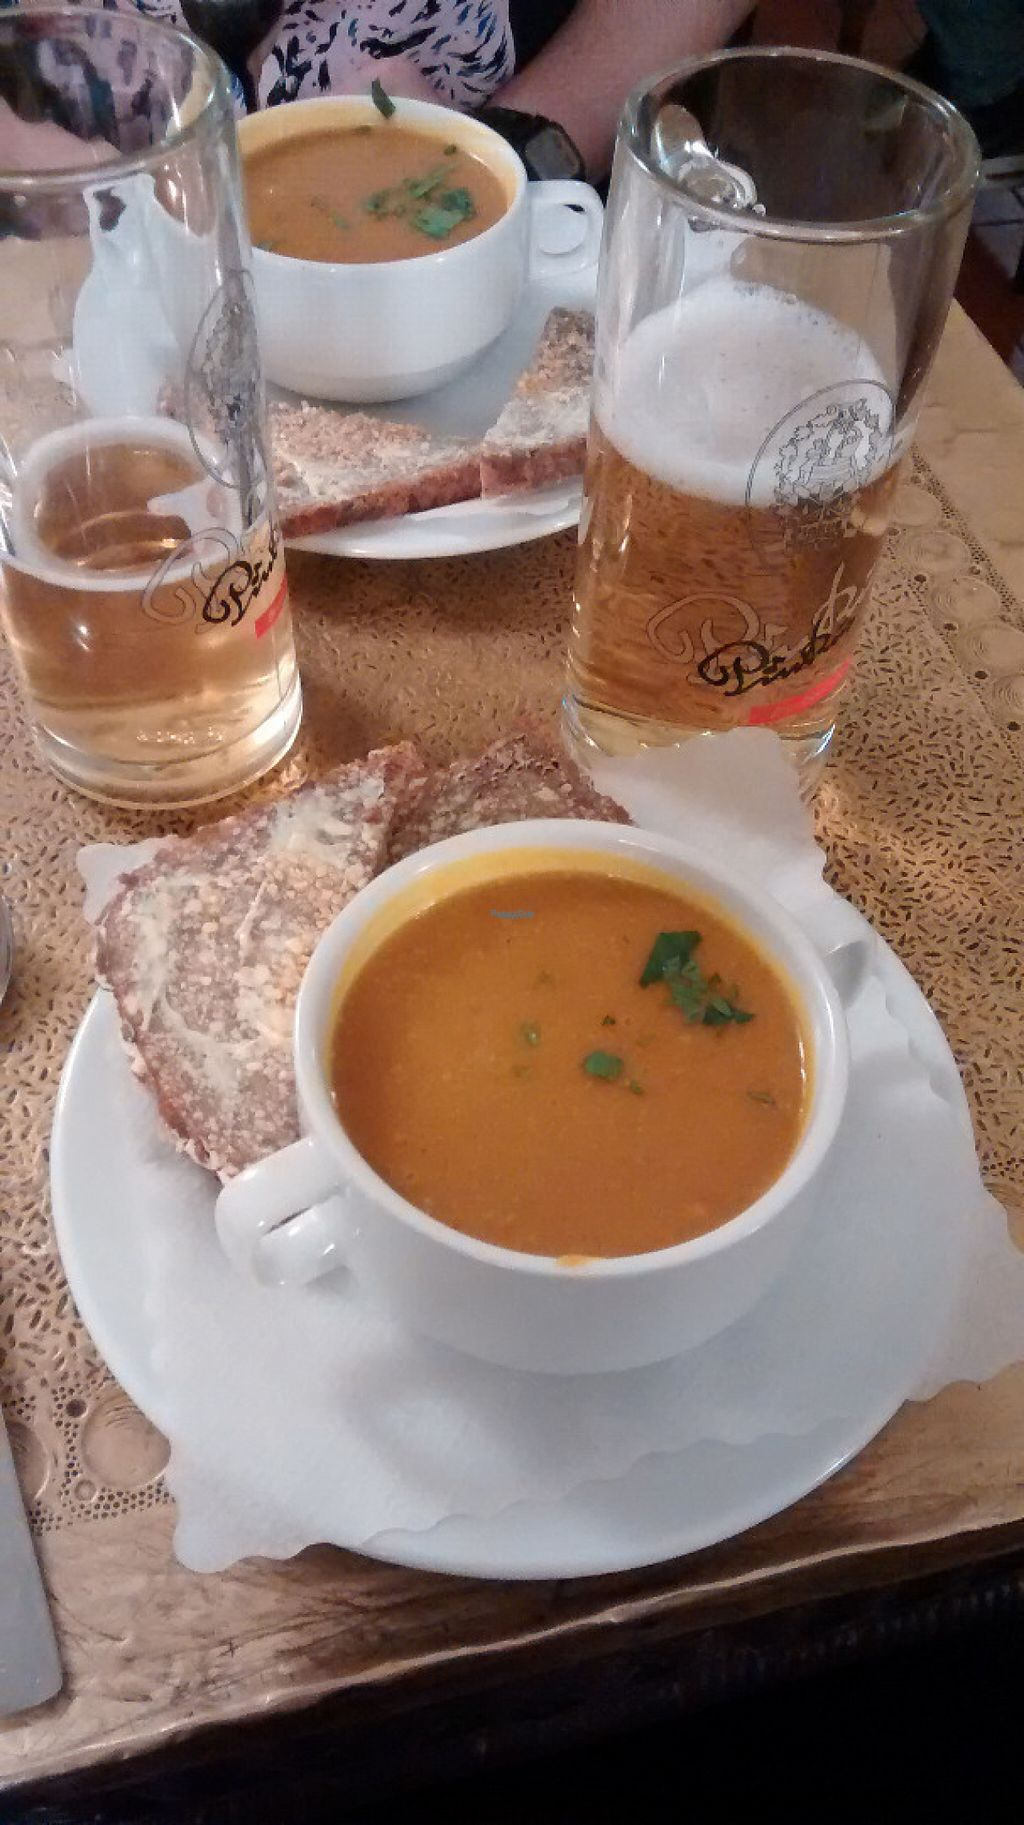 "Photo of Cafe Koppel  by <a href=""/members/profile/BlisterBlue"">BlisterBlue</a> <br/>Soup of the day (pumpkin and spices), delicious! <br/> November 2, 2016  - <a href='/contact/abuse/image/16259/186116'>Report</a>"